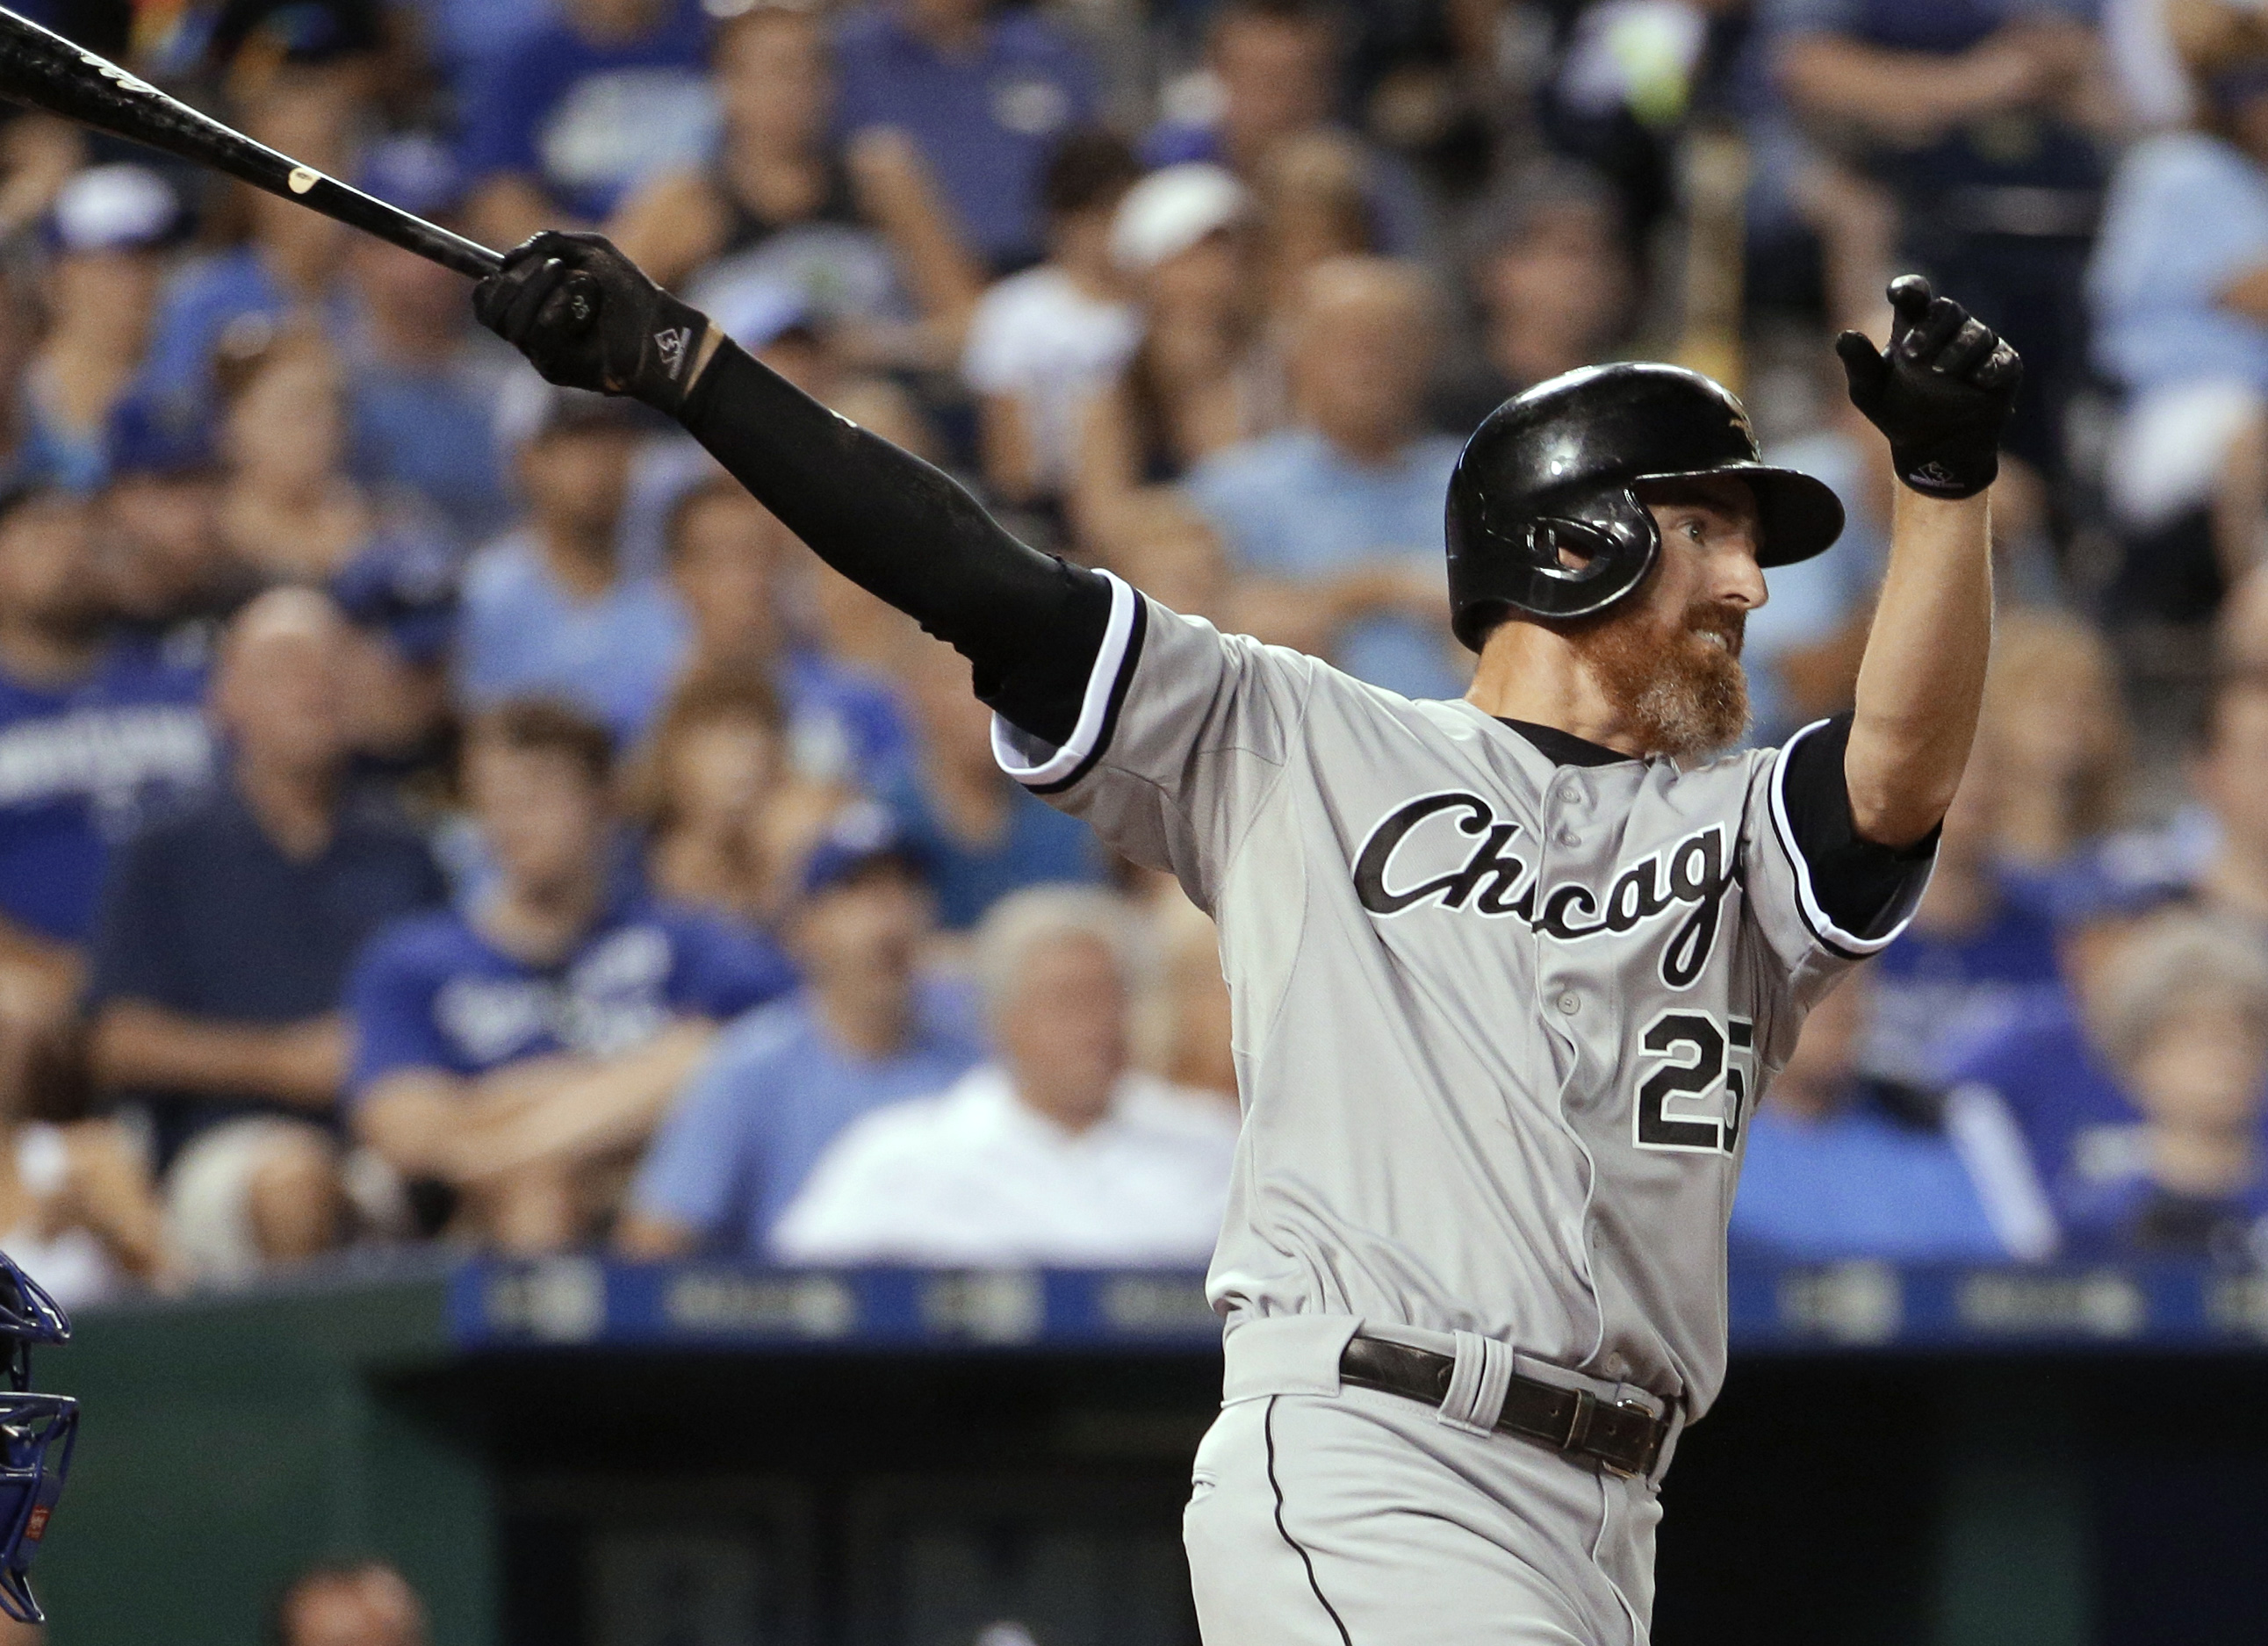 Chicago White Sox's Adam LaRoche follows through on a solo home run during the ninth inning of a baseball game against the Kansas City Royals Friday, Aug. 7, 2015, in Kansas City, Mo. The Royals won 3-2. (AP Photo/Charlie Riedel)